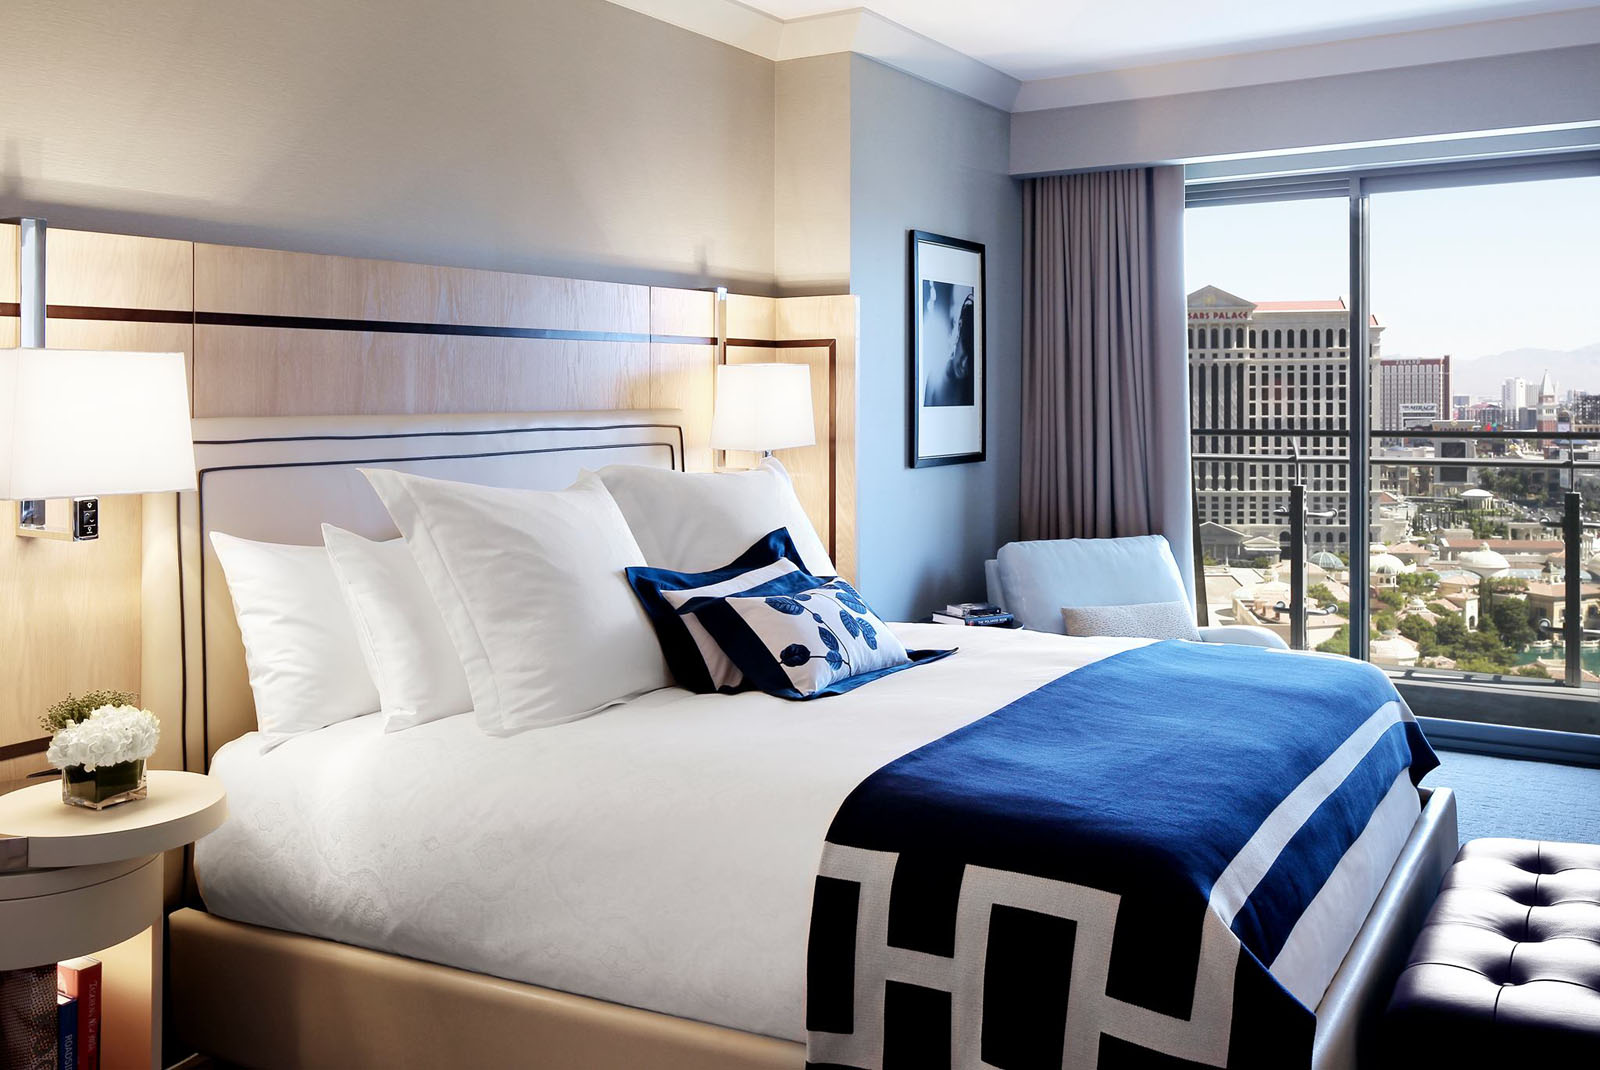 Swanky Hotel Interior Design: The Cosmopolitan Of Las